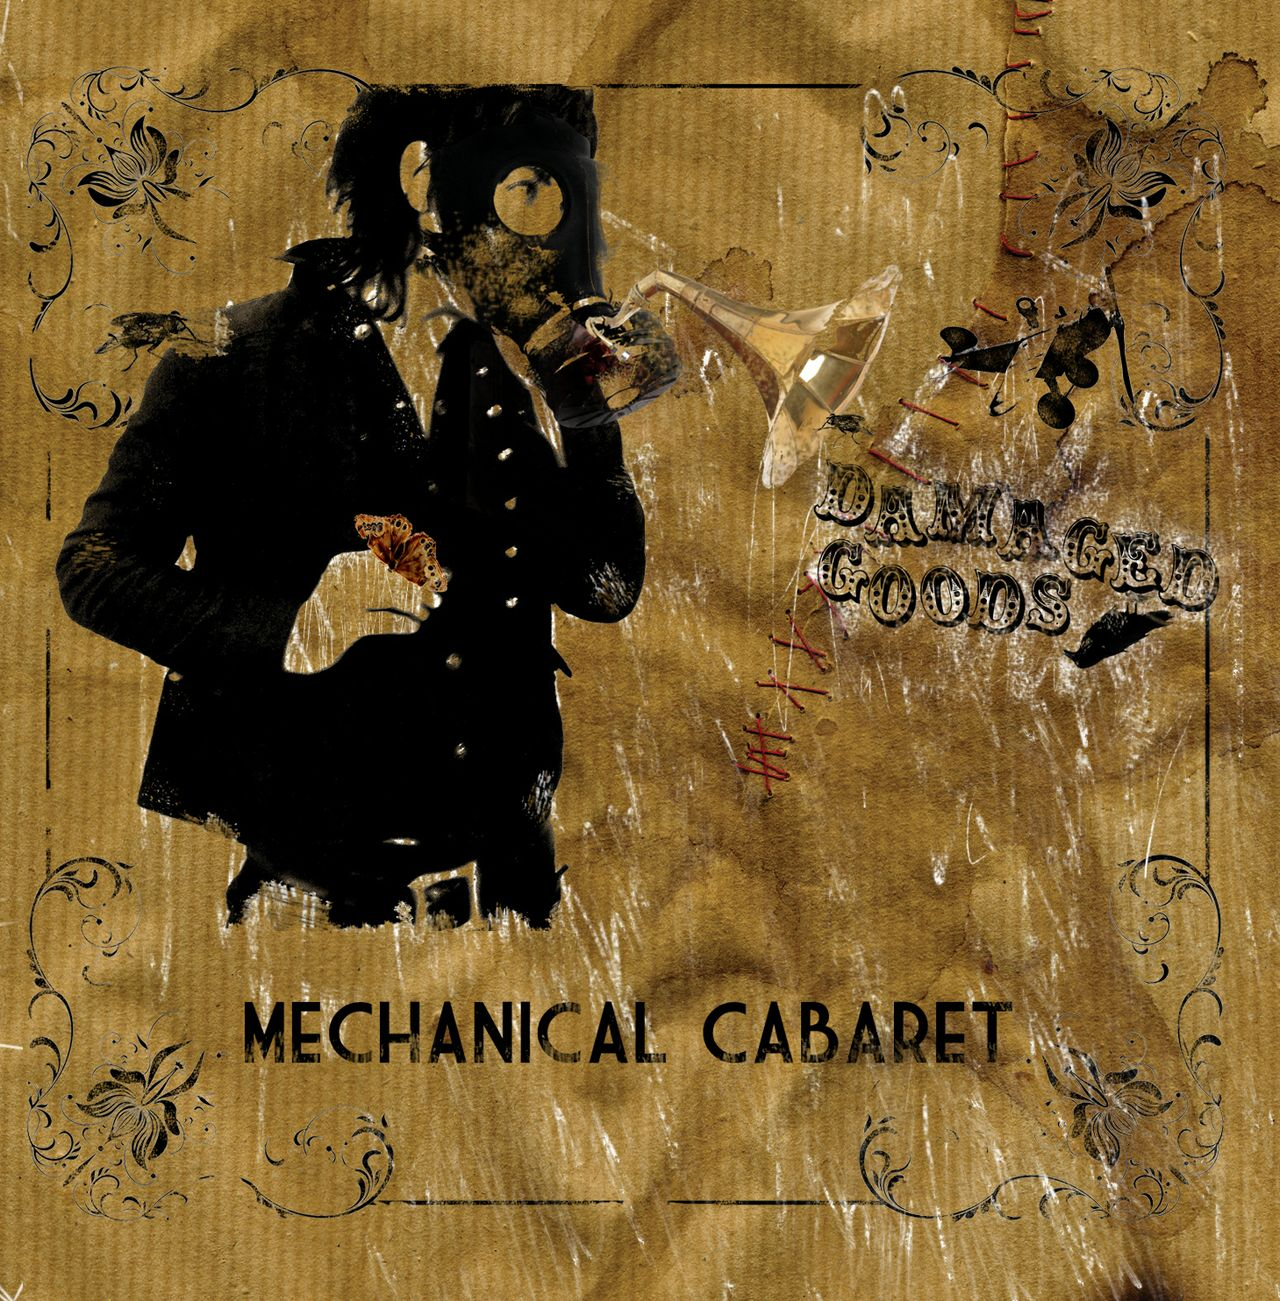 Mechanical Cabaret - Damaged Goods - Album - 10 tracks